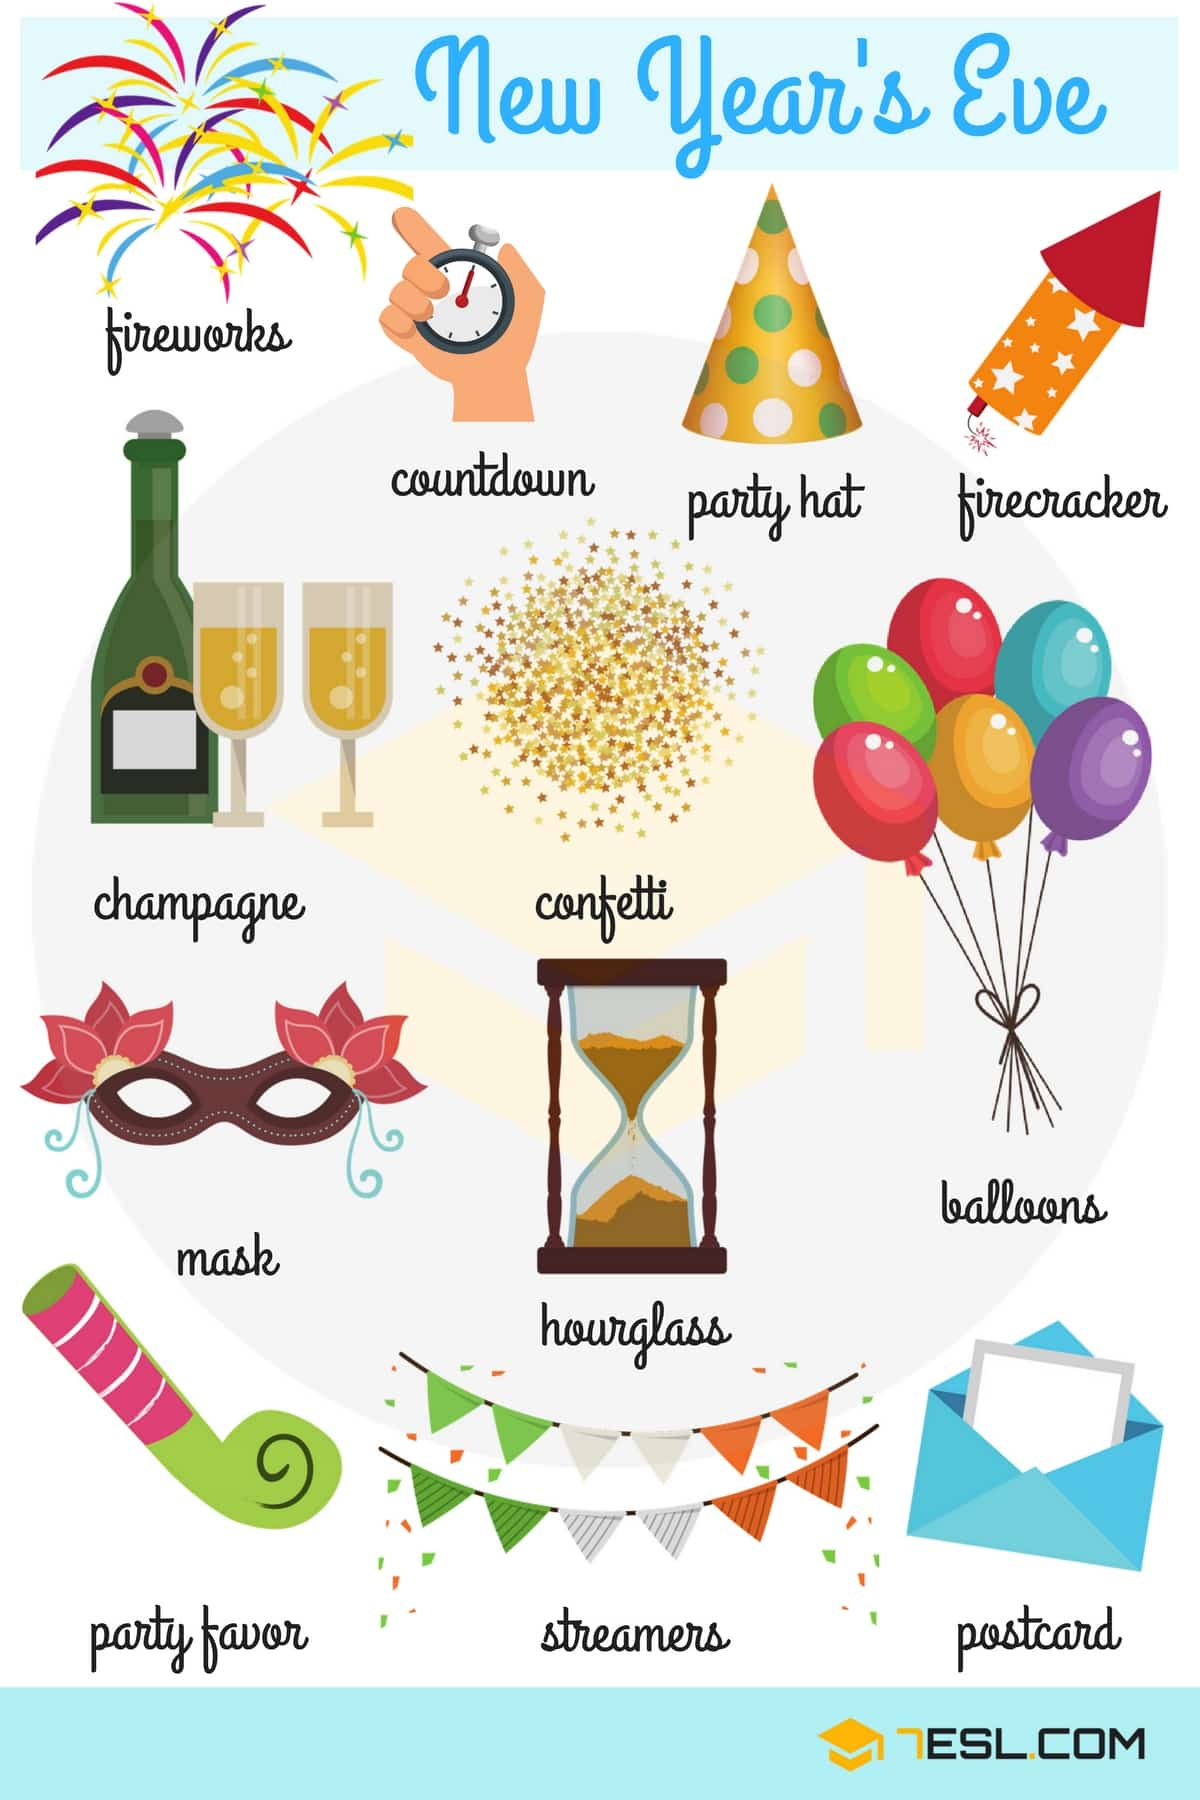 New Year's Eve Vocabulary